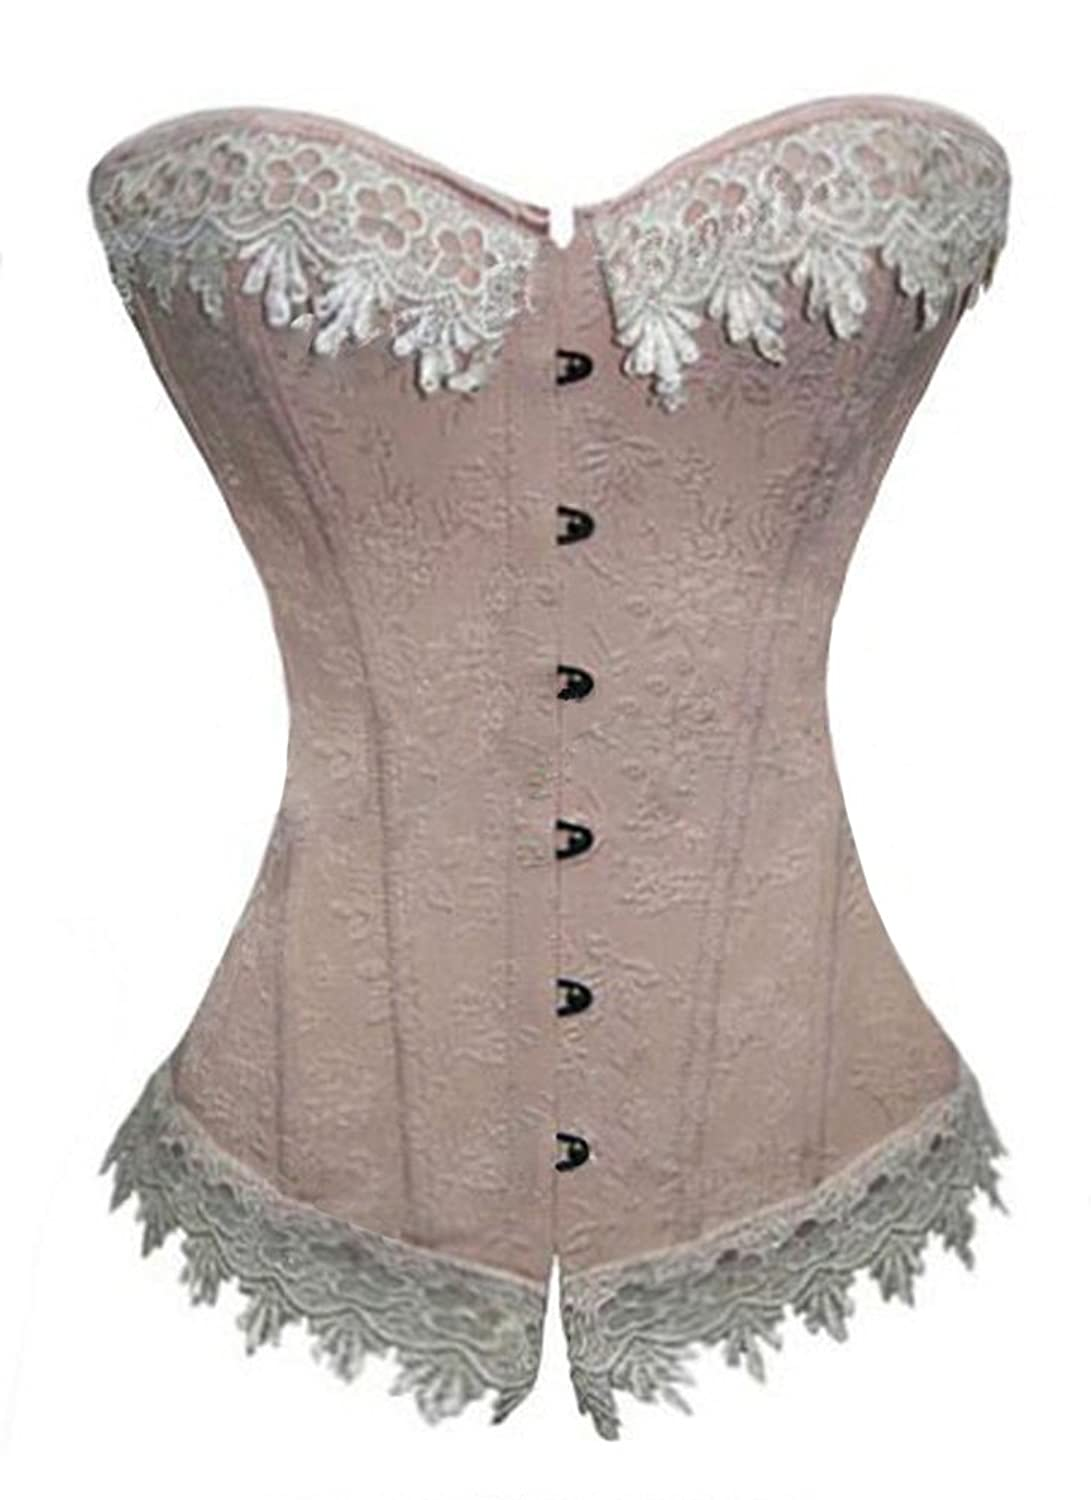 Vintage Inspired Wedding Dress | Vintage Style Wedding Dresses Luvsecretlingerie Moulin Rouge Victorian Overbust Fashion Corset Bustier $15.99 AT vintagedancer.com